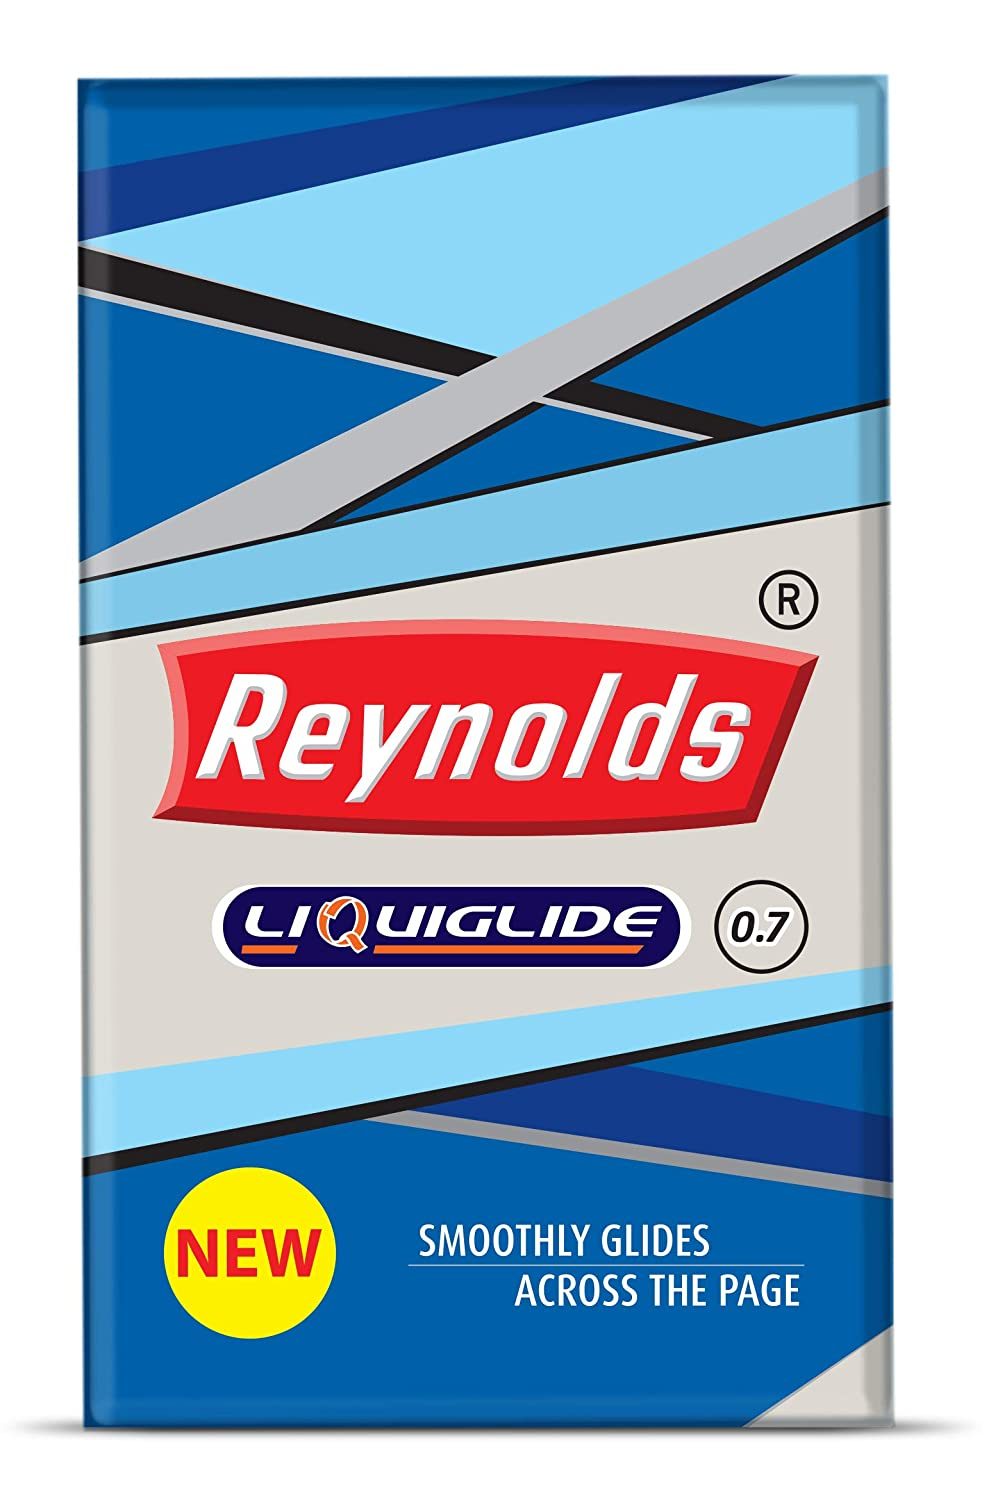 Reynolds Liquiglide Ballpoint Pen, Fine Tip (0.7mm), Red Ink, 20 Count